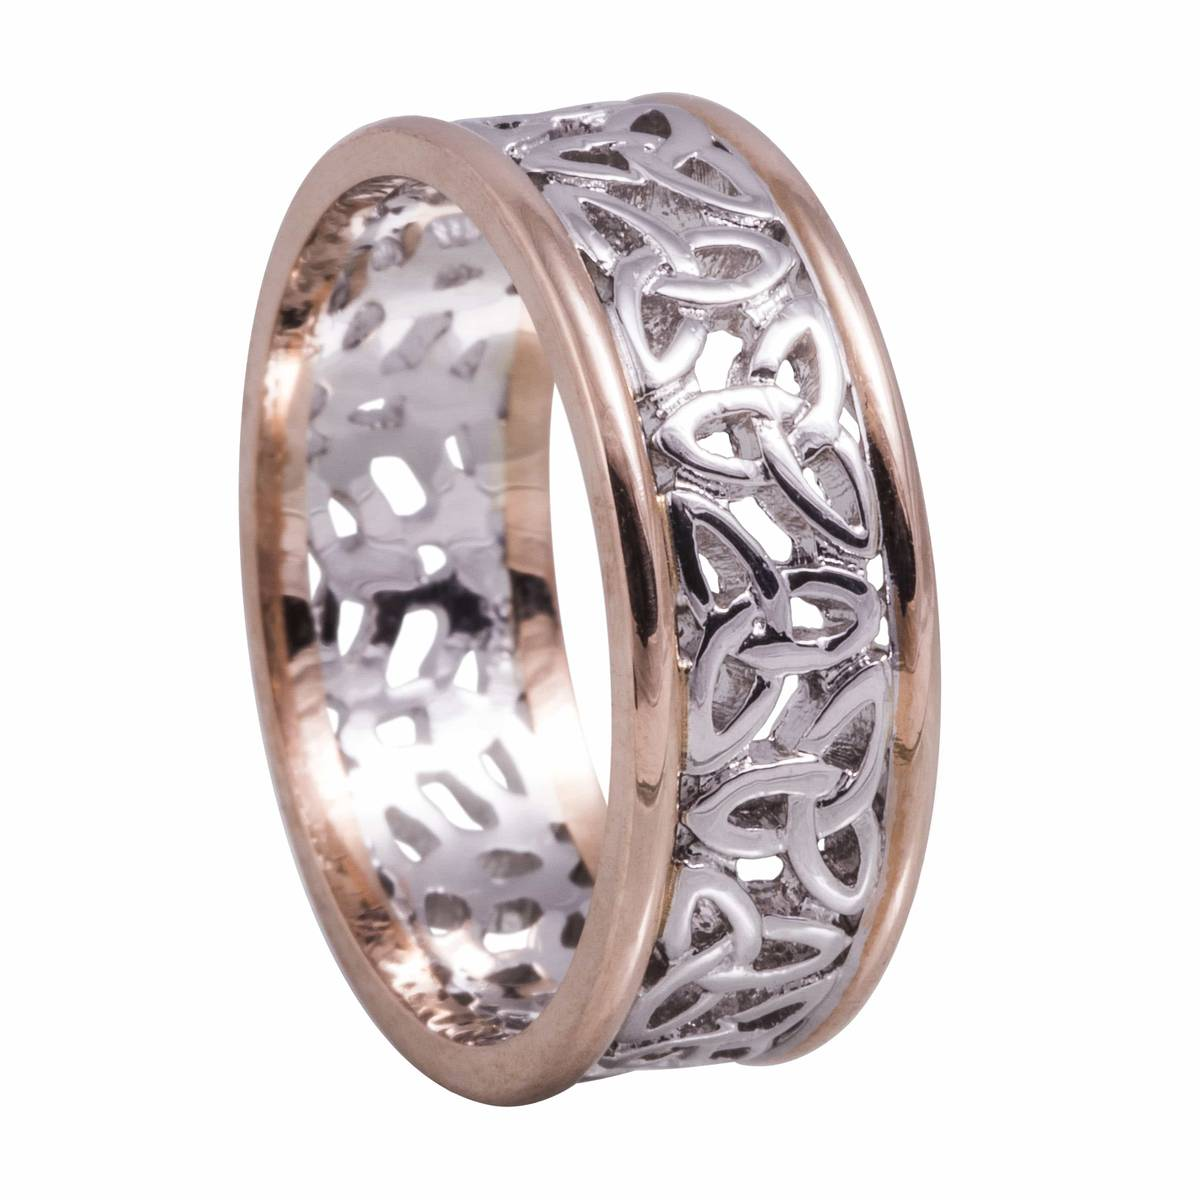 14 ct white gold trinity knot centre band with rose rims. Fabulous wedding ring in the Celtic eternity knot style.